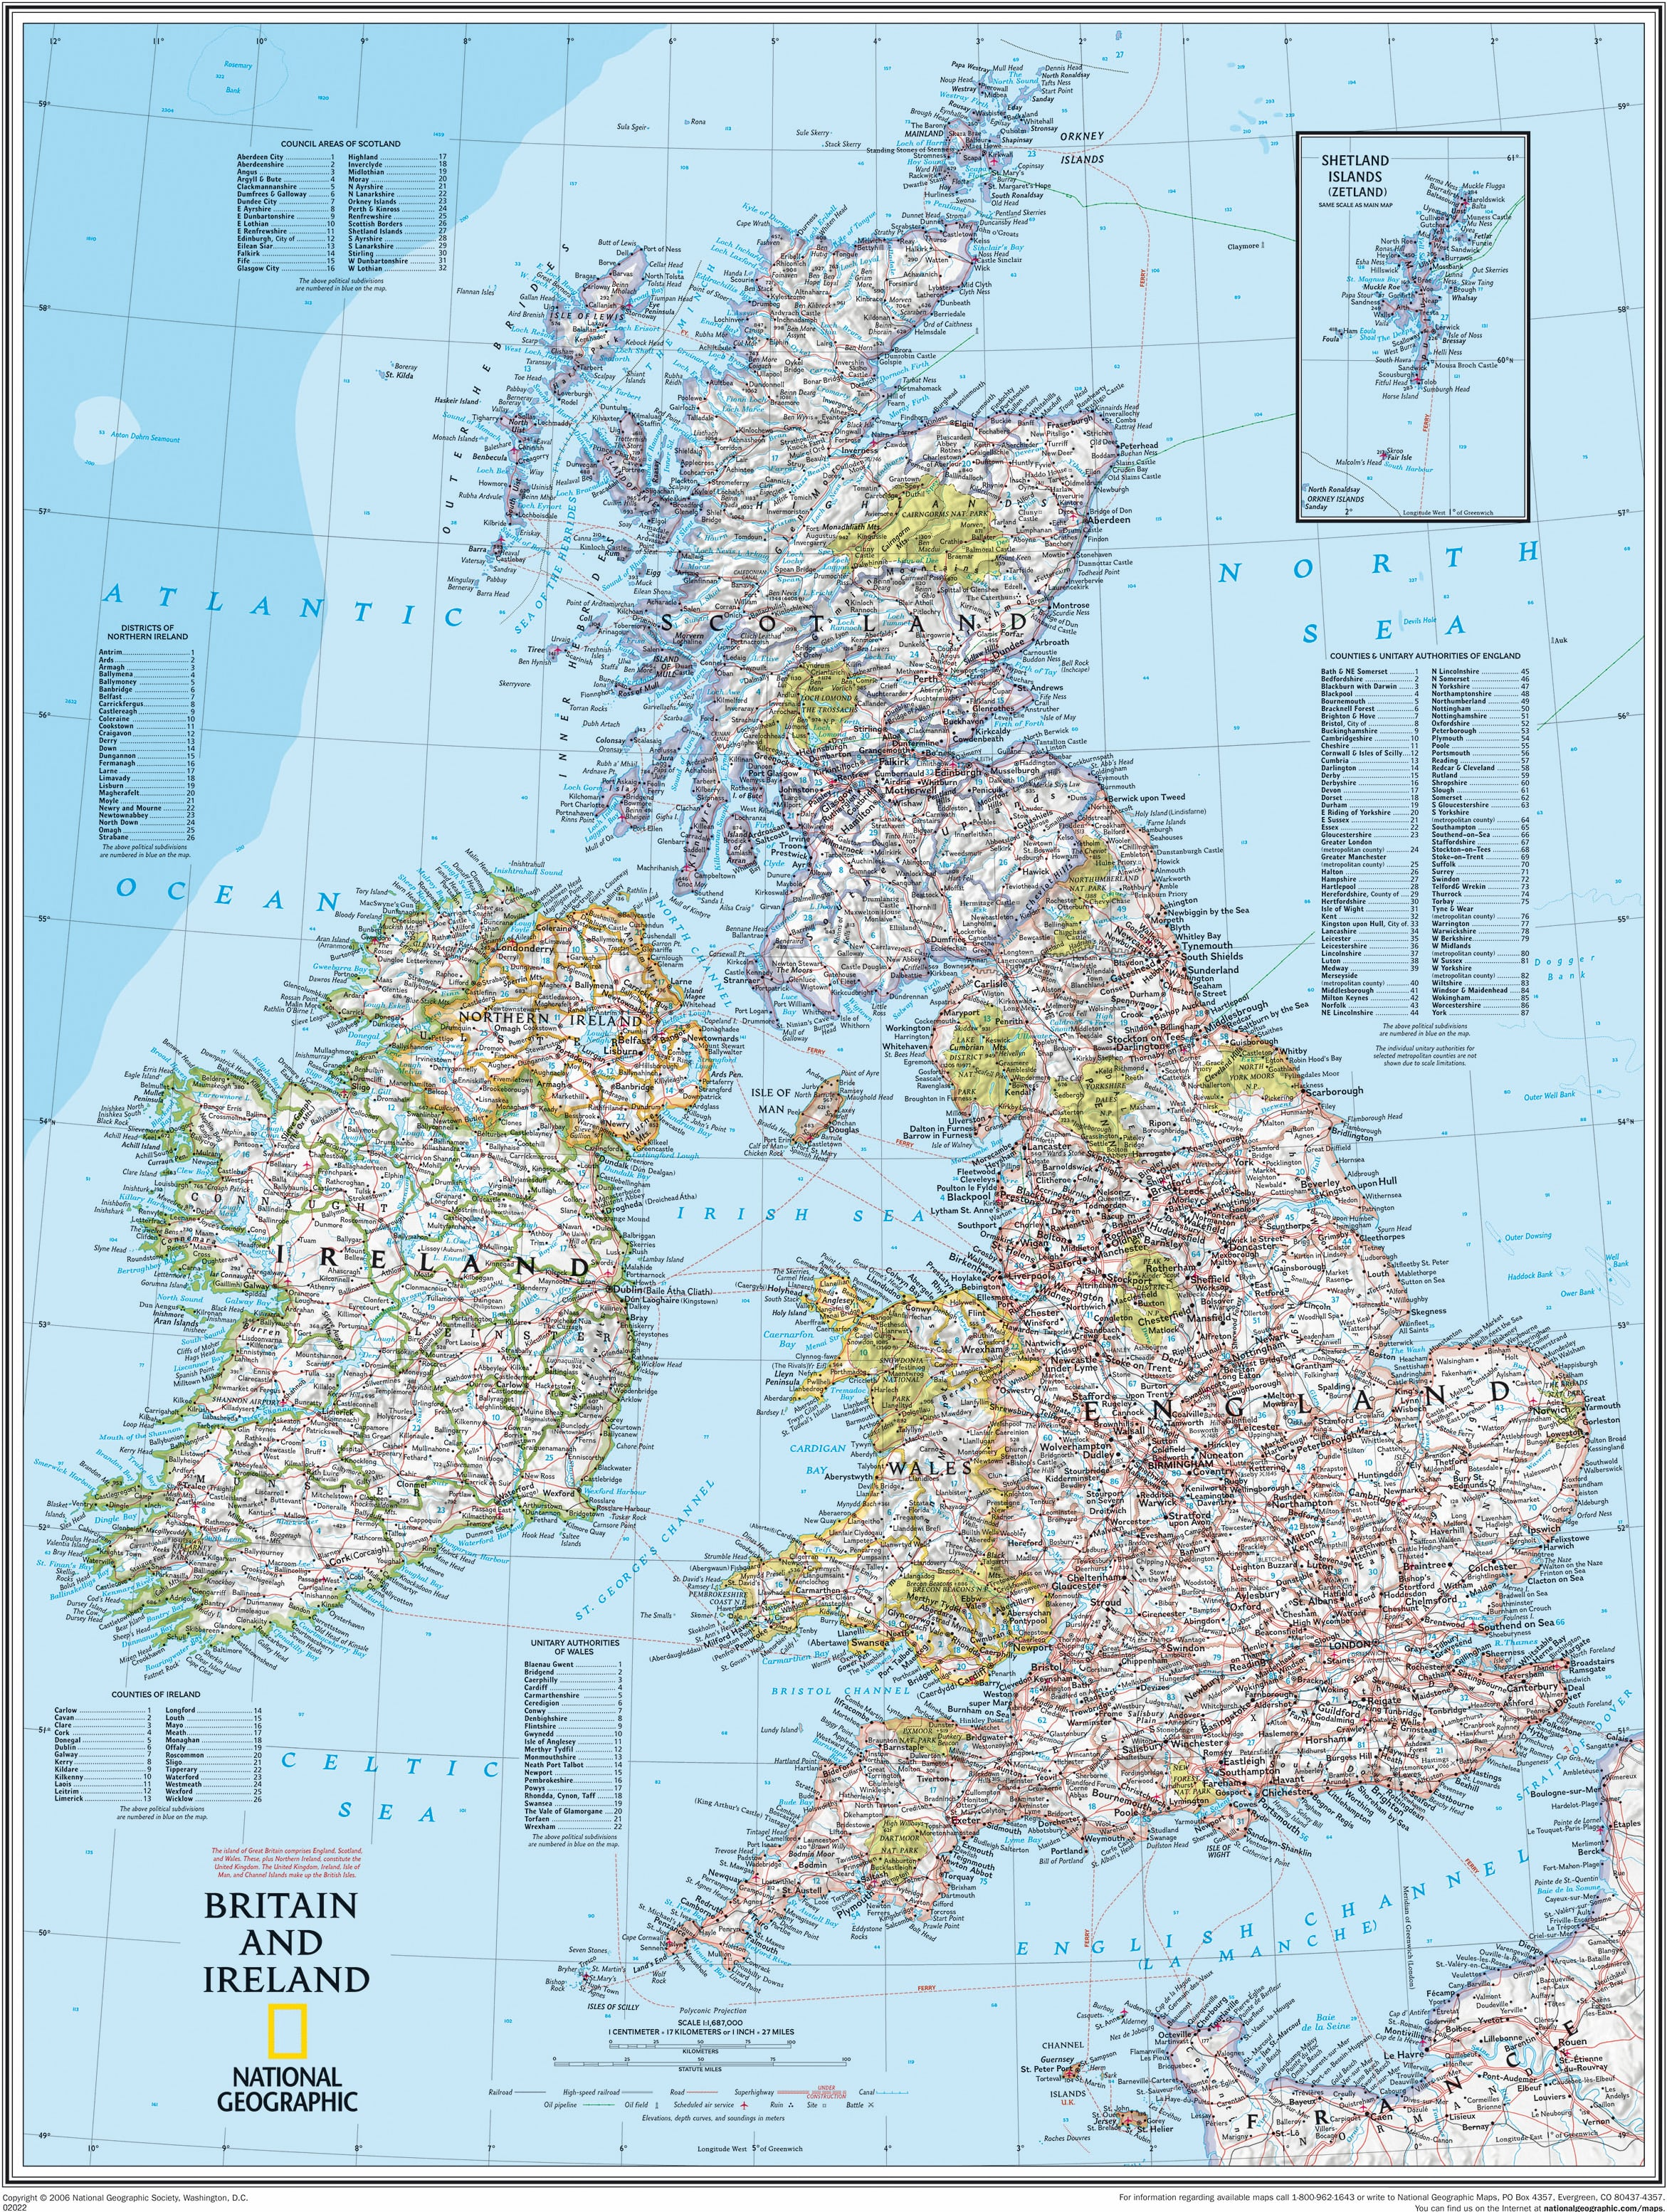 photograph regarding Printable Map of Uk and Ireland named Suitable Britain and Eire Wall Map